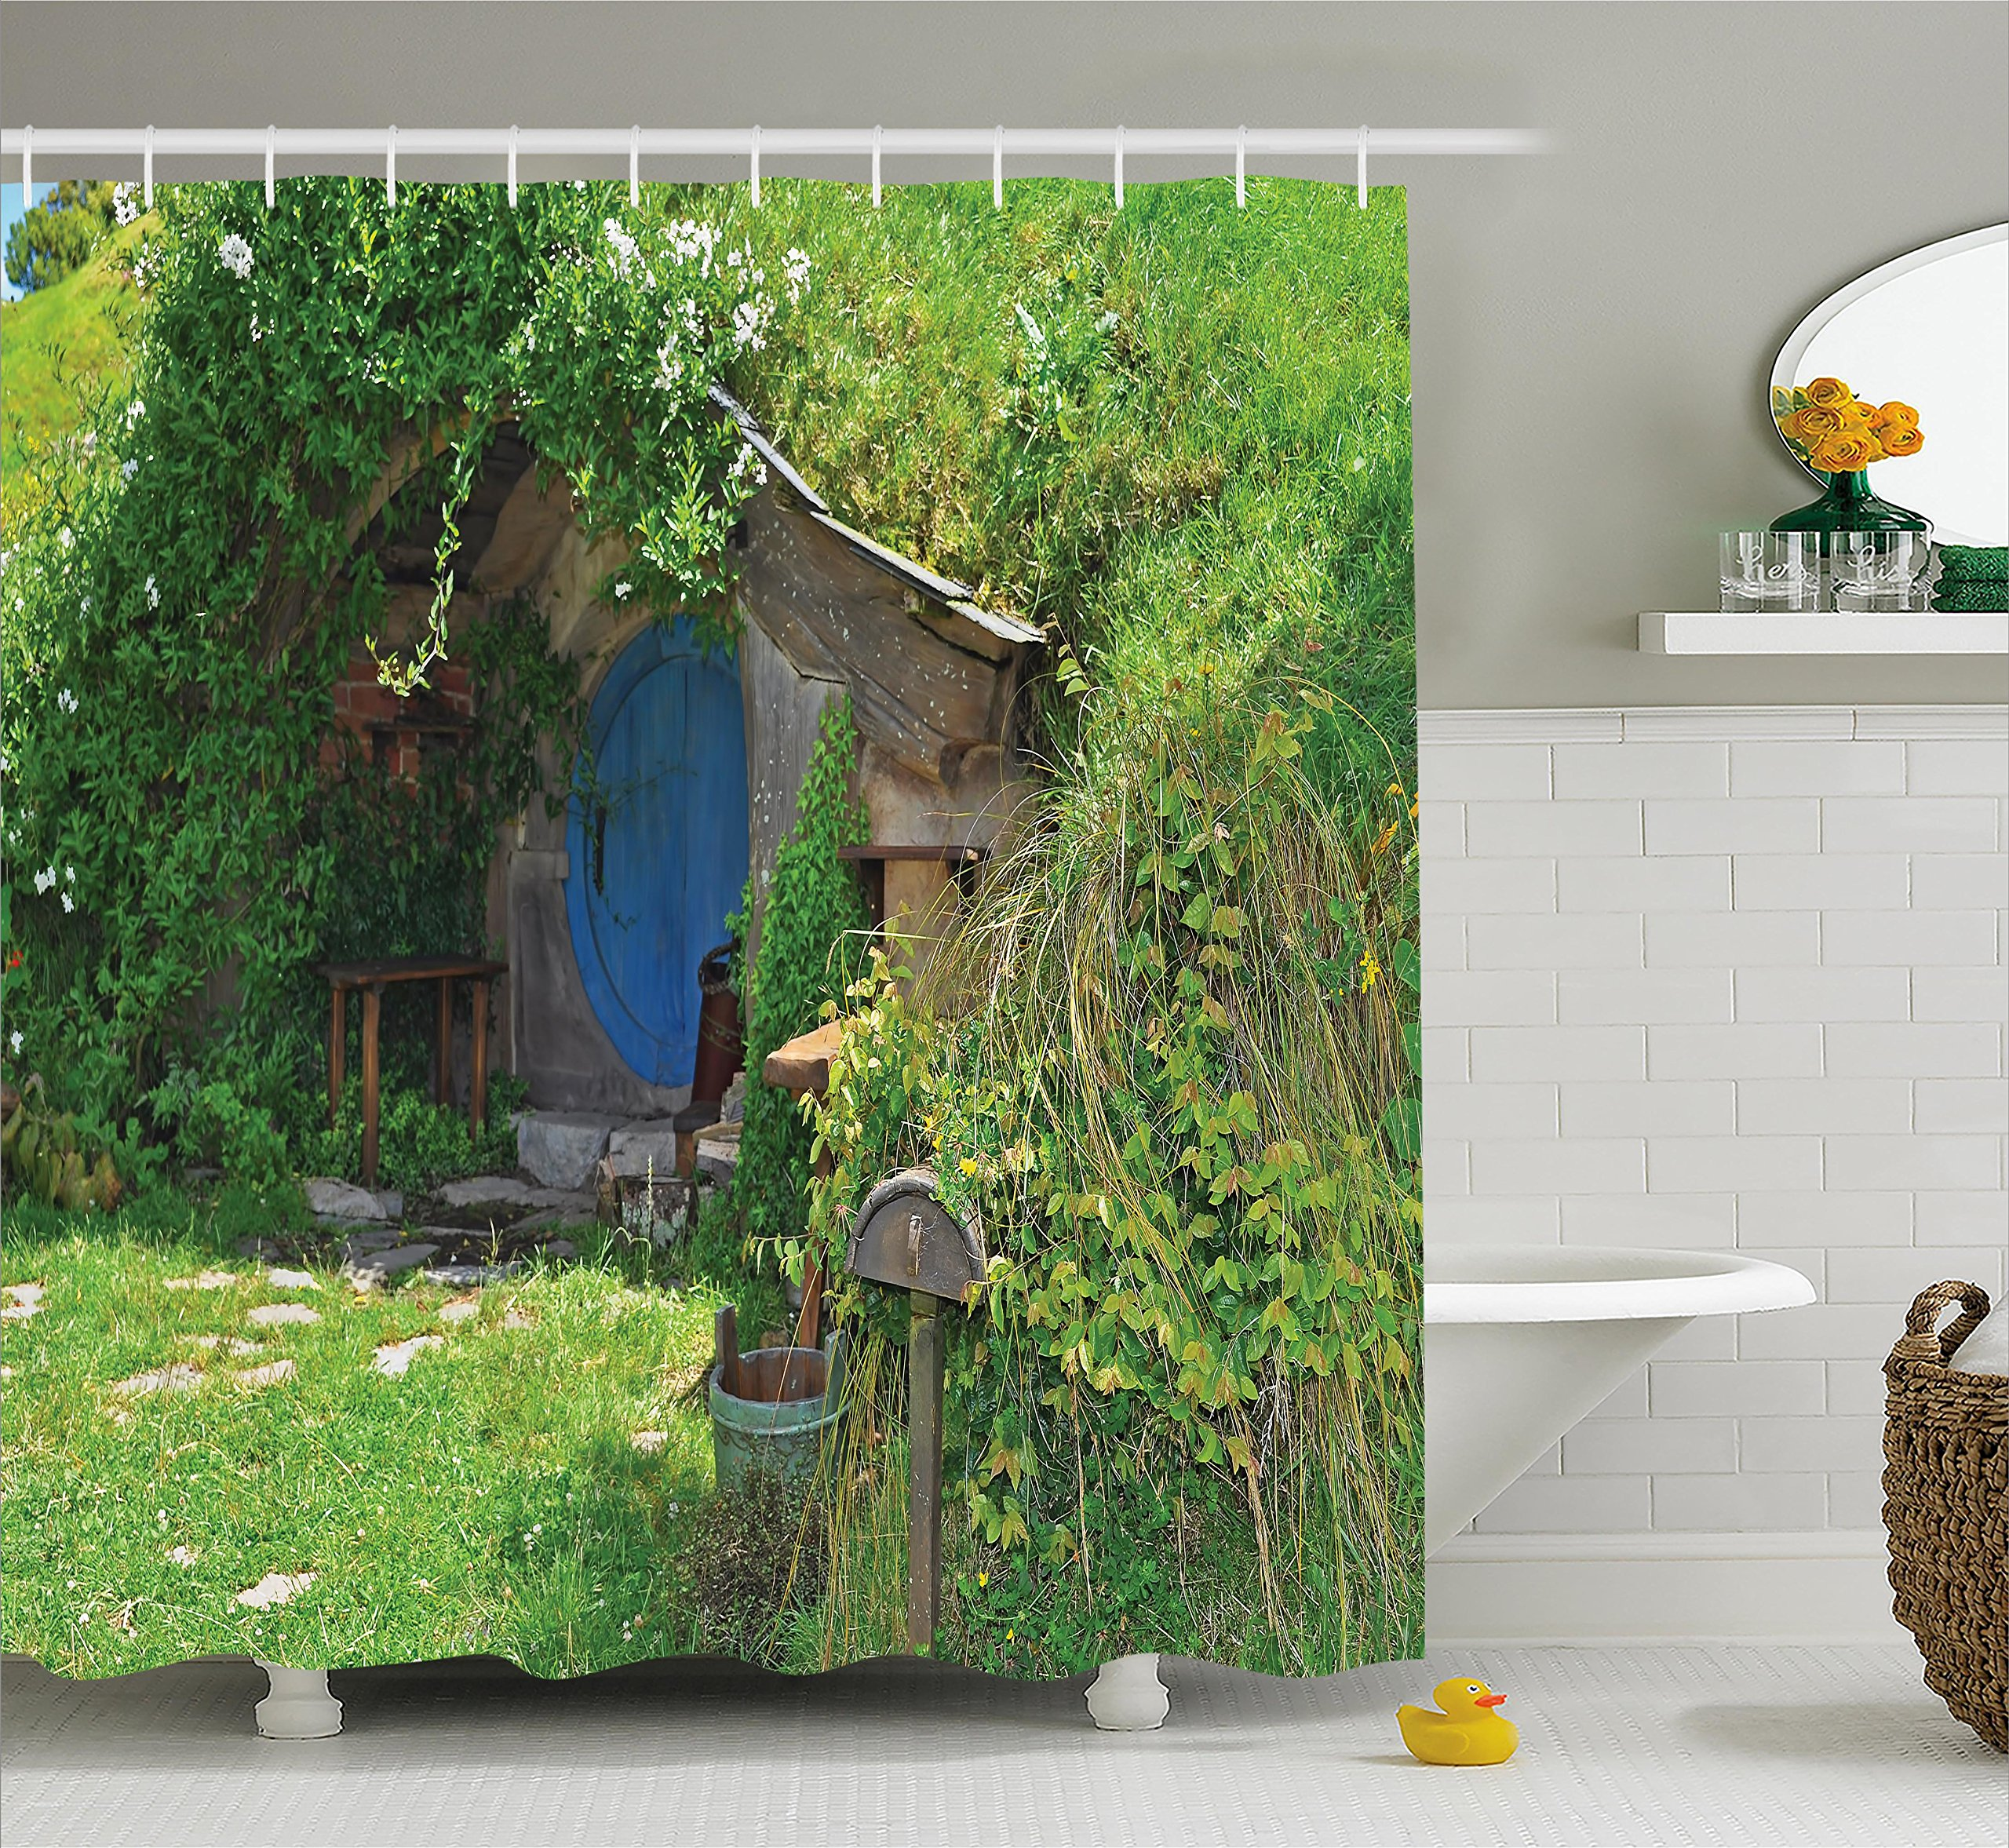 Ambesonne Hobbits Shower Curtain Set, Fantasy Hobbit Land House in Magical Overhill Woods Movie Scene Image New Zealand, Fabric Bathroom Decor with Hooks, 70 inches, Green Brown Blue